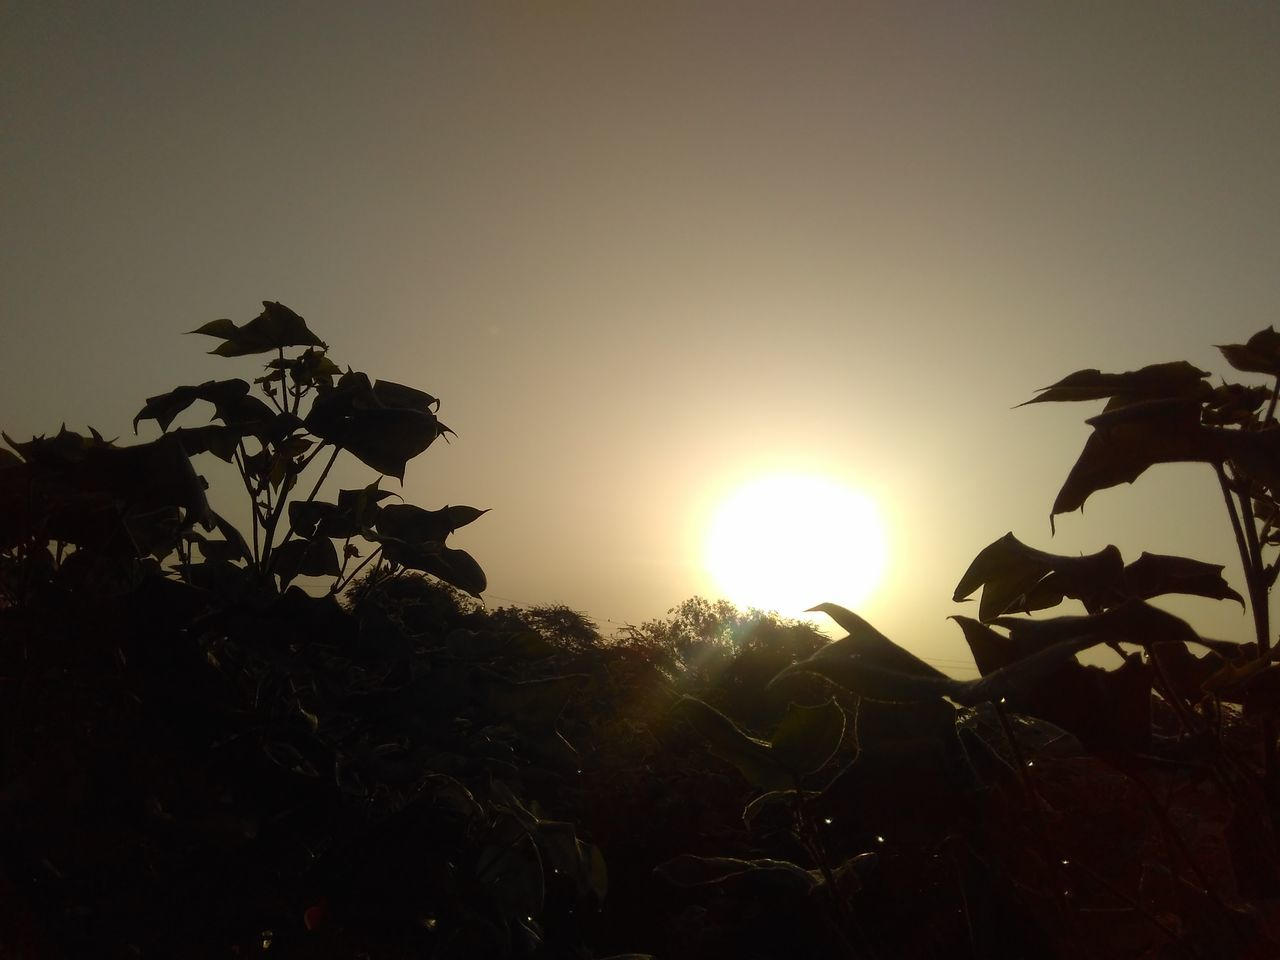 sun, sunset, lens flare, sunbeam, sunlight, nature, beauty in nature, outdoors, silhouette, sky, no people, clear sky, tranquil scene, tranquility, growth, leaf, low angle view, scenics, close-up, tree, day